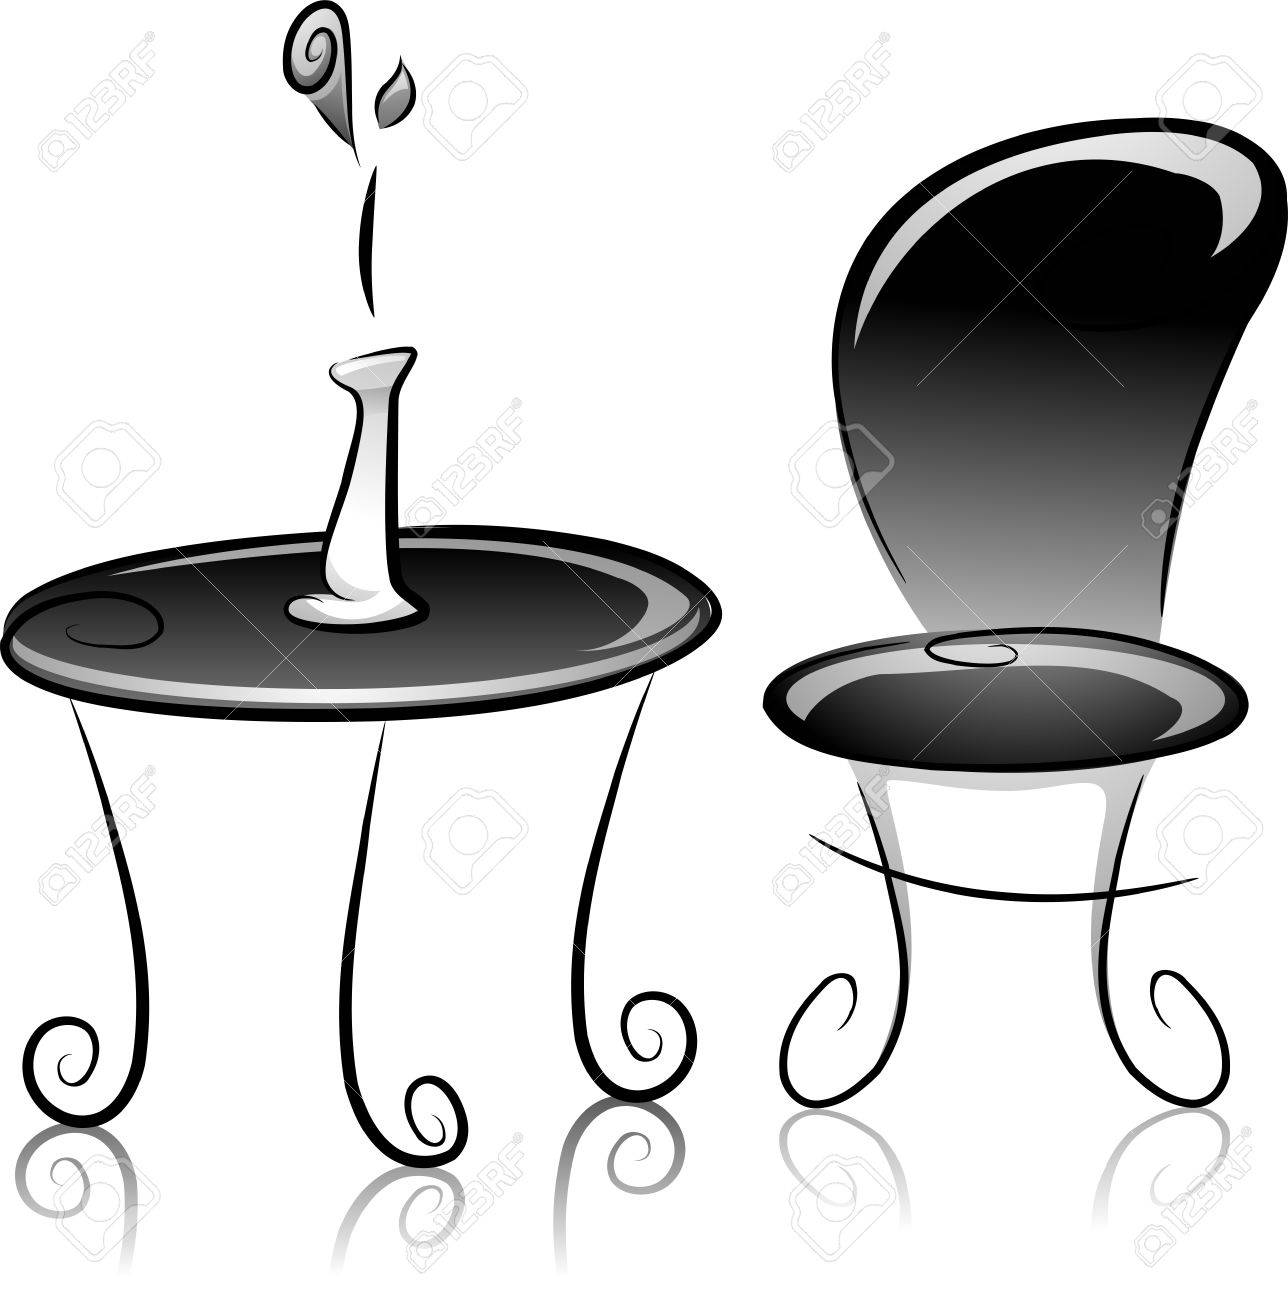 Illustration of flower vase table and chair in black and white illustration of flower vase table and chair in black and white stock illustration 22244905 reviewsmspy